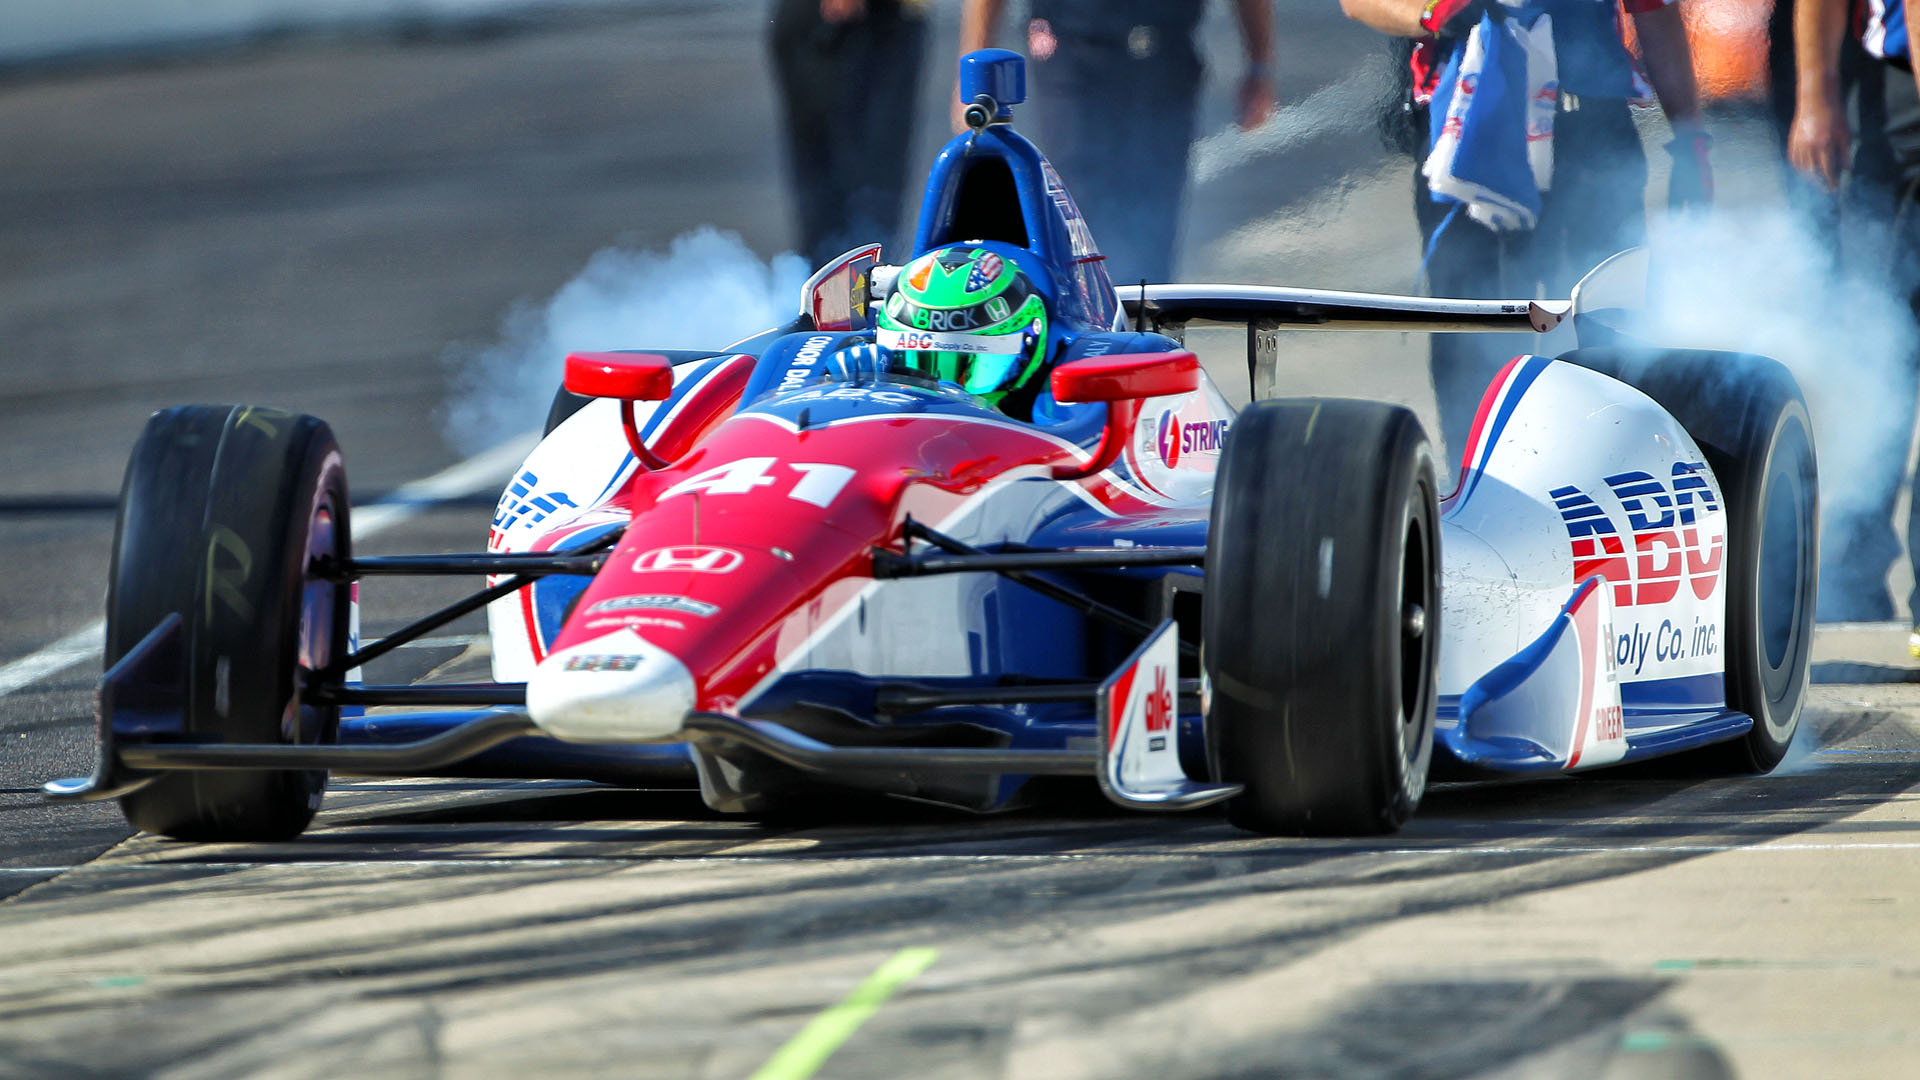 Daly on his IndyCar debut at the 2013 Indy 500 with AJ Foyt Racing. (Image: Marshall Pruett)